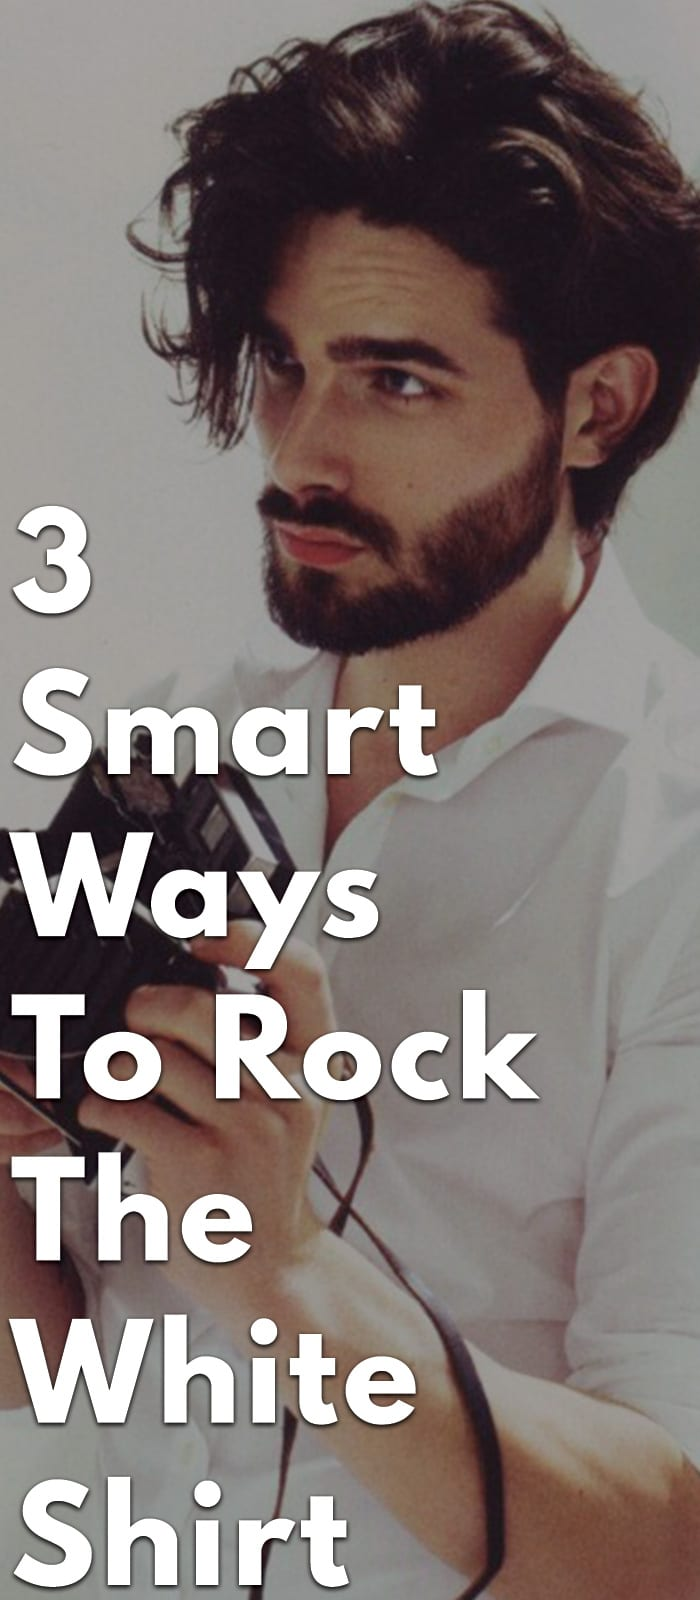 3-Smart-Ways-to-Rock-the-White-Shirt